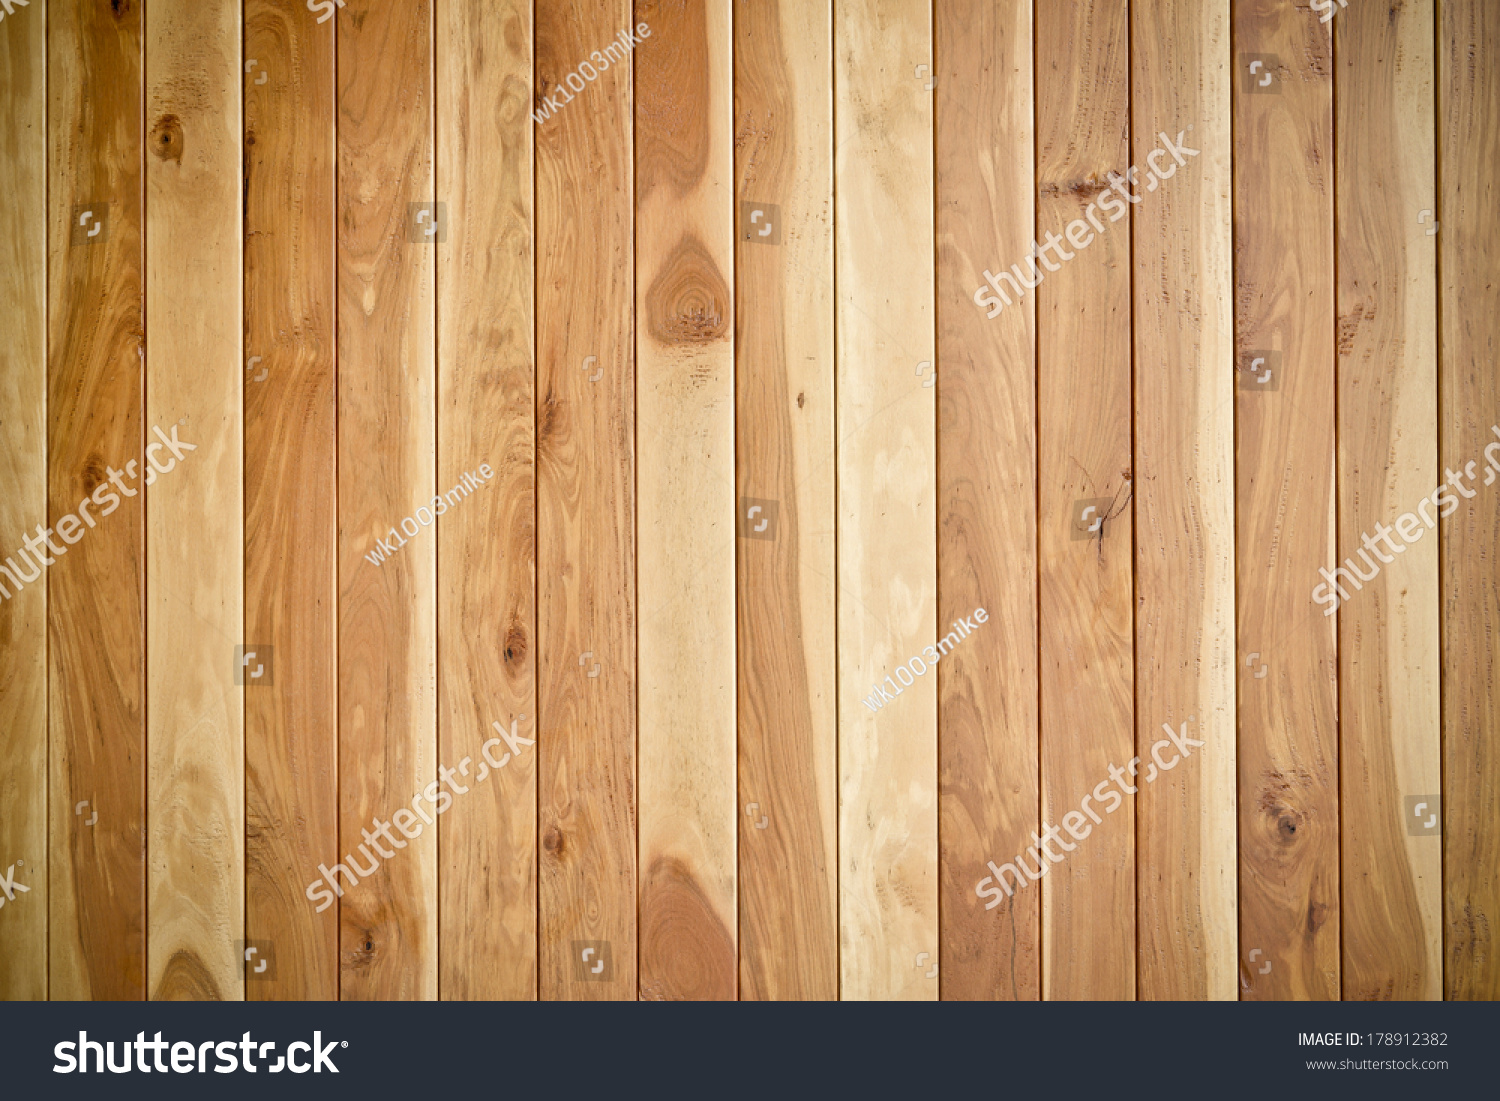 Teakholz textur  Teak Wood Plank Texture Natural Patterns Stock Photo 178912382 ...